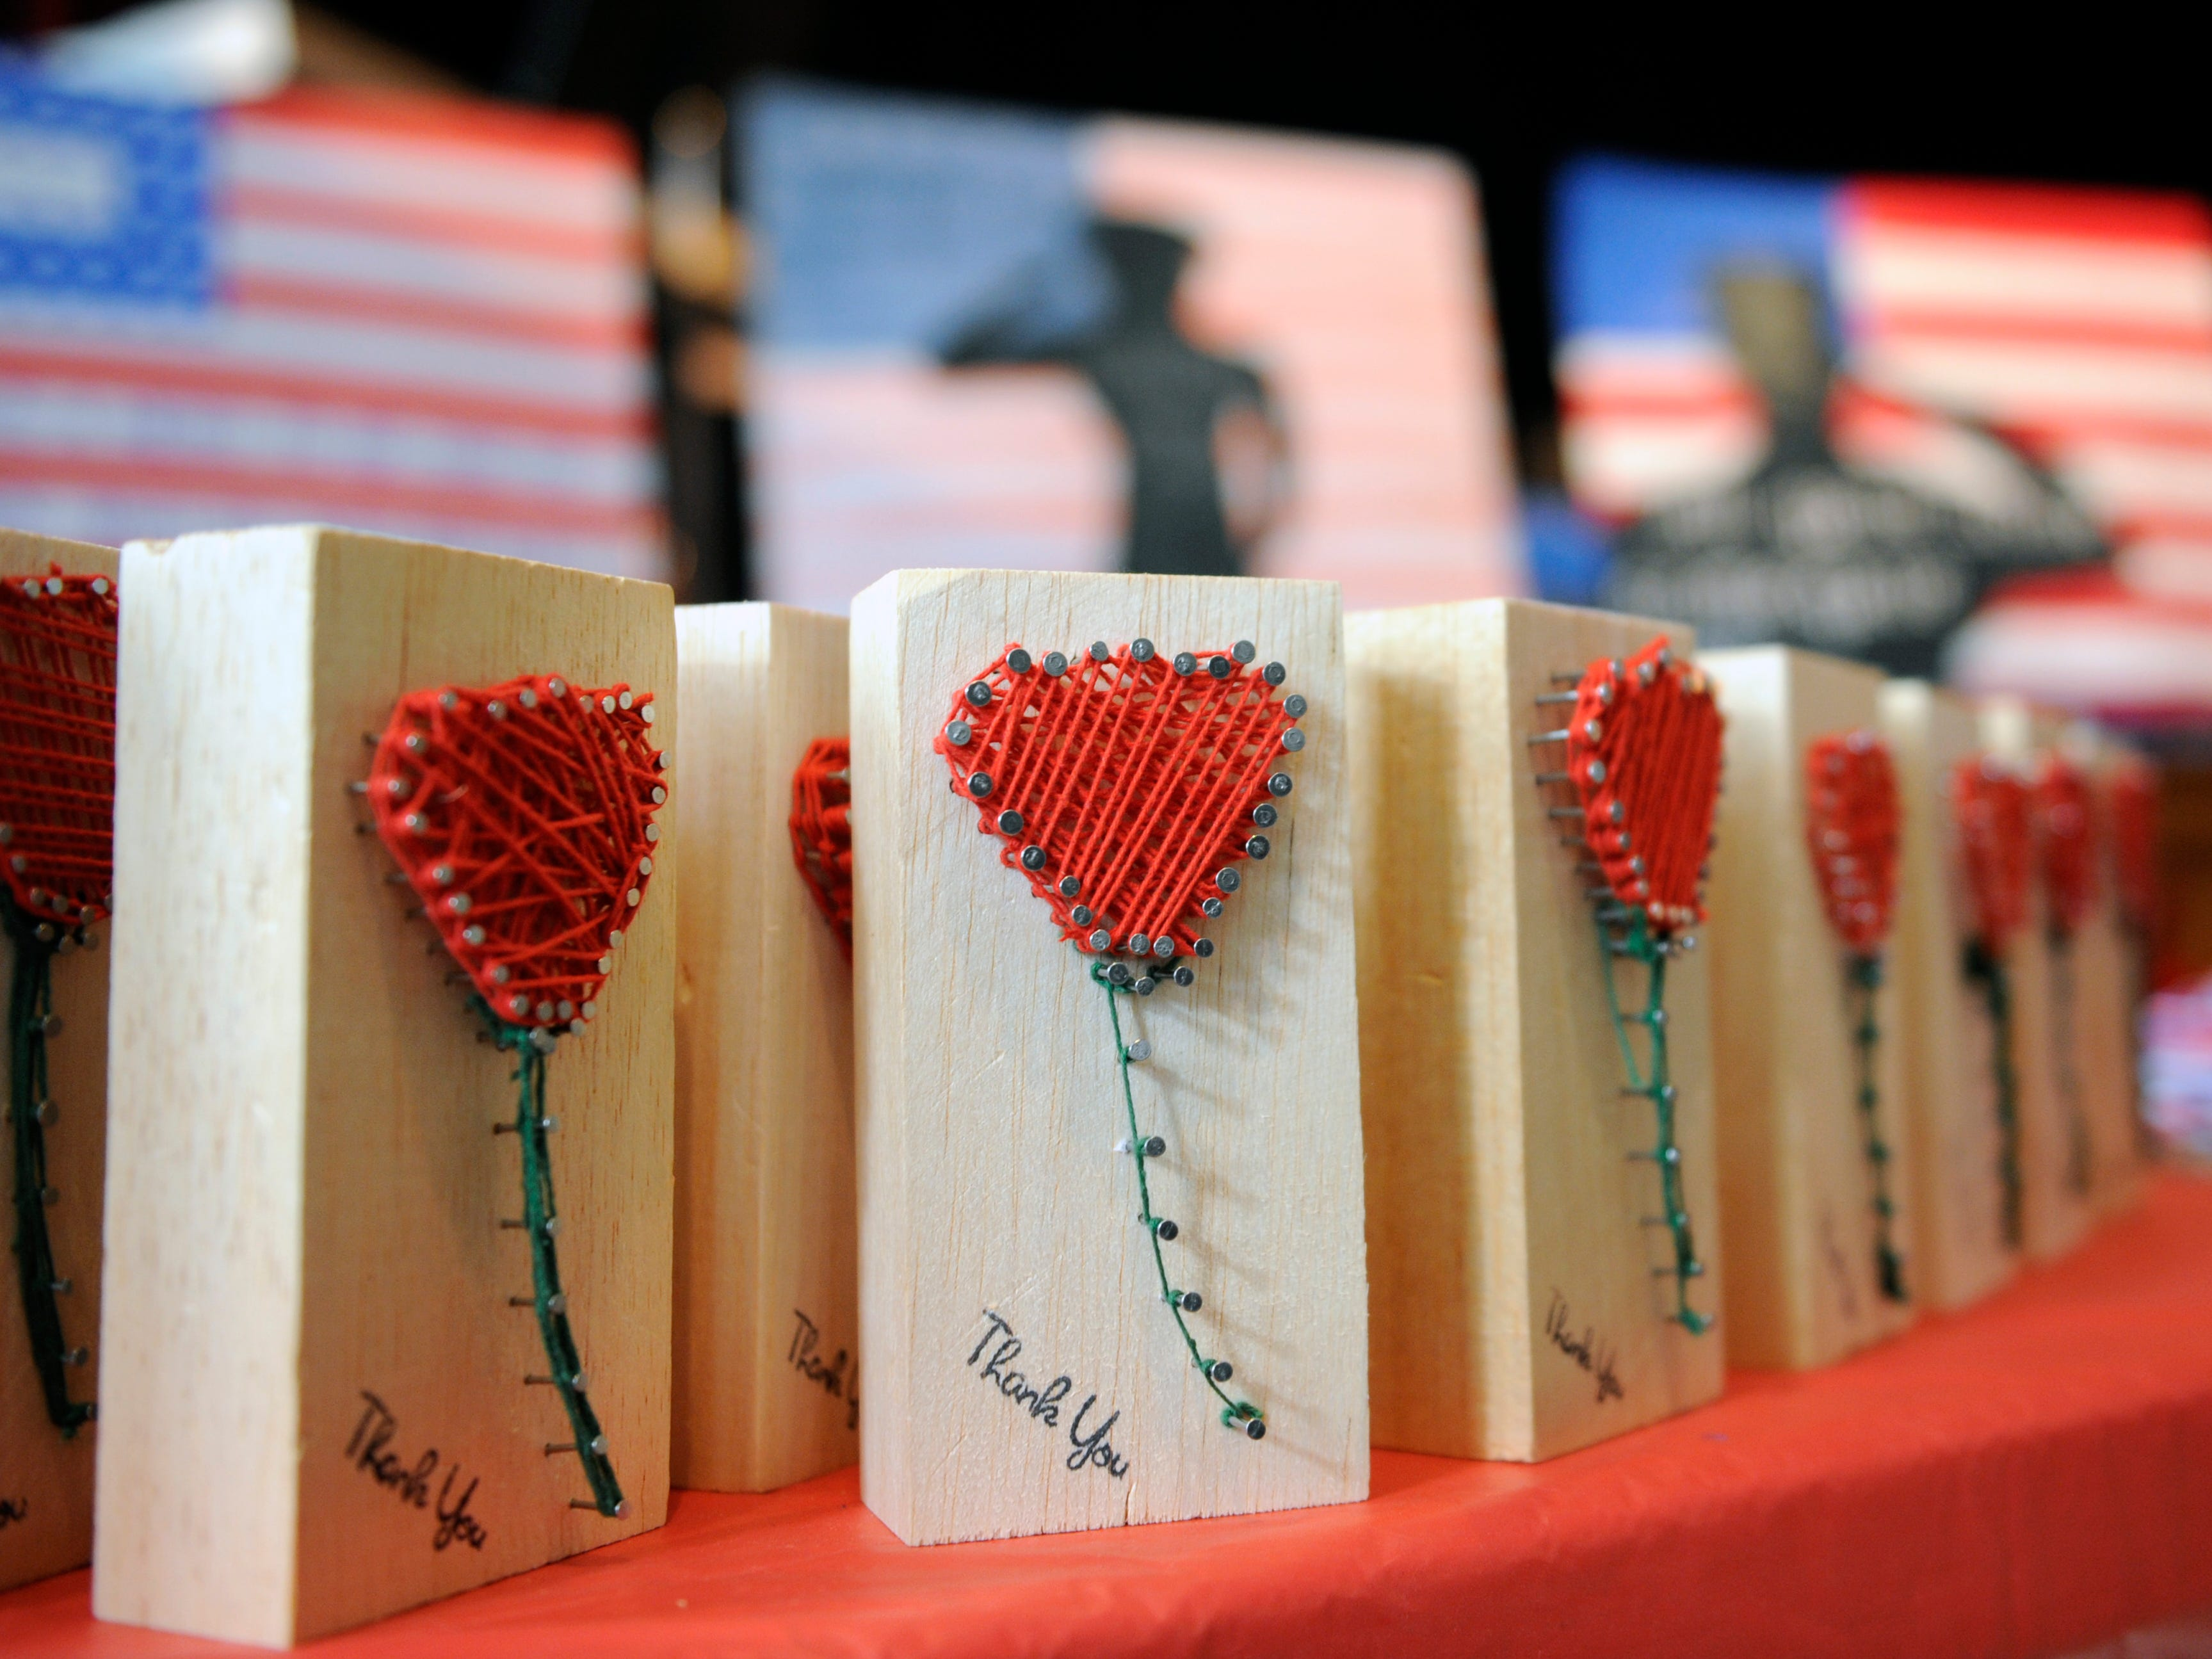 Students handed out pin and thread art representing a rose during a special assembly honoring heroes at Veterans Memorial School on Wednesday, November 14, 2018.